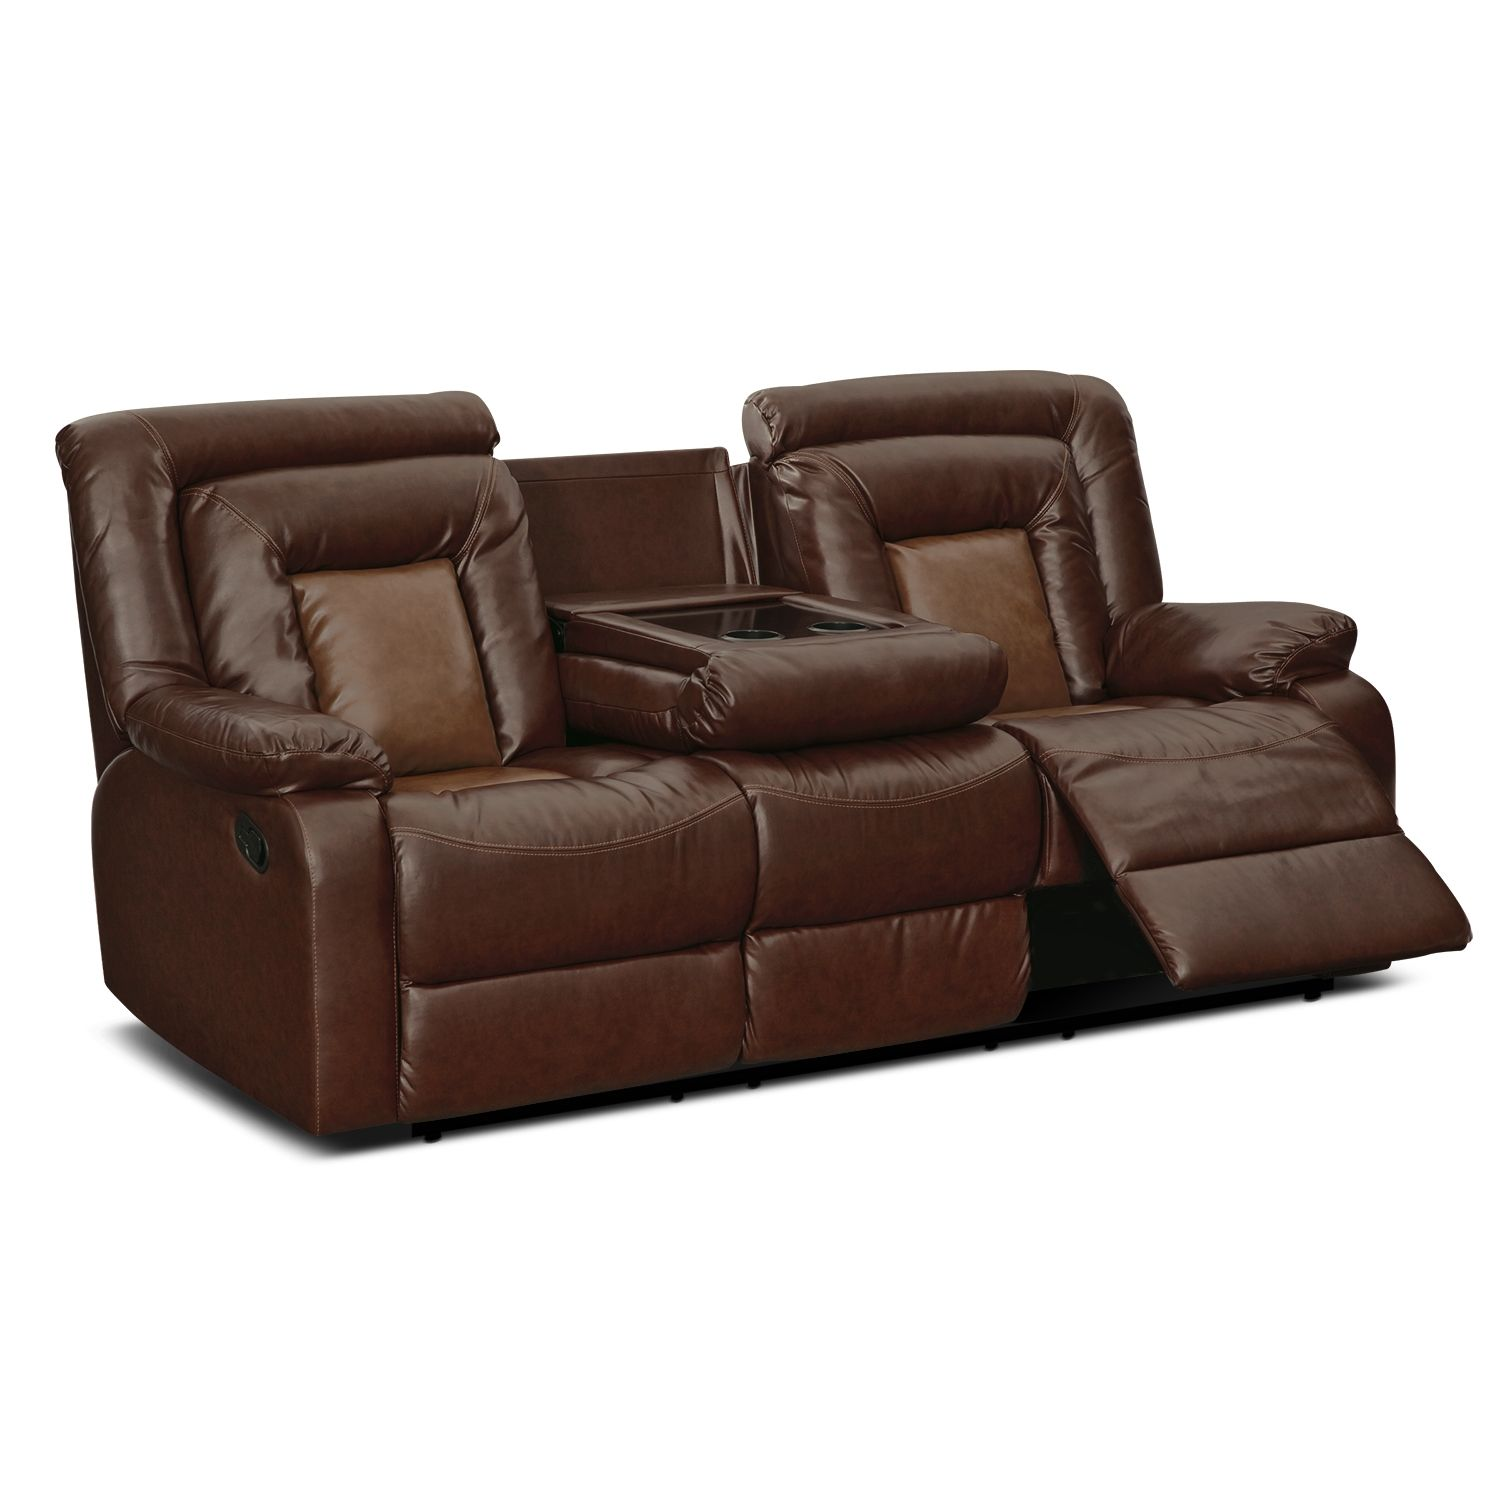 leather value glamorous couch main furniture sets couches decor white casino room sofas sofa living signature lovely sleeper city